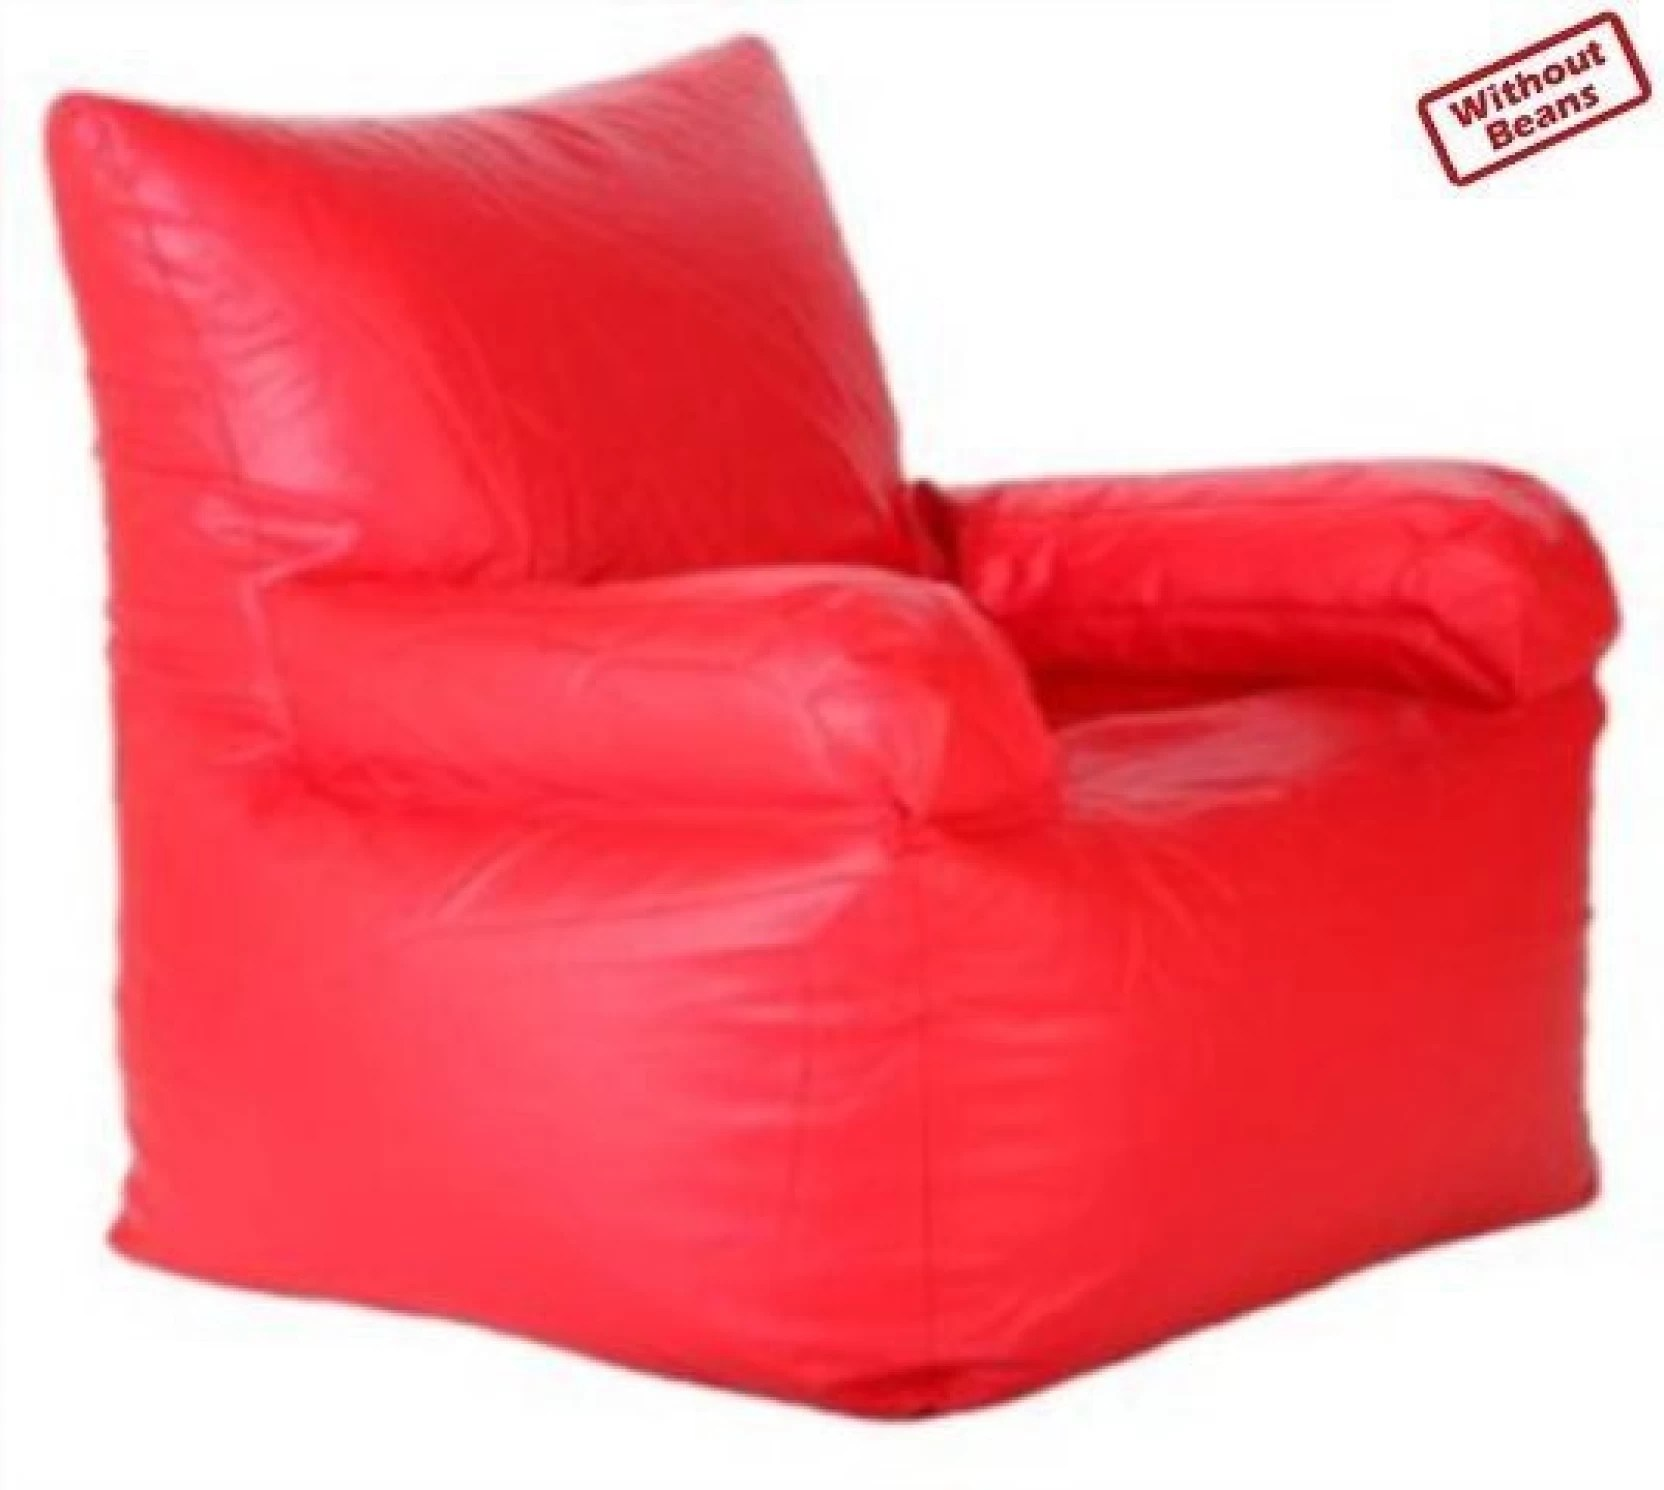 bean bag sofa india timothy oulton big bazaar xxxl cover without beans price in